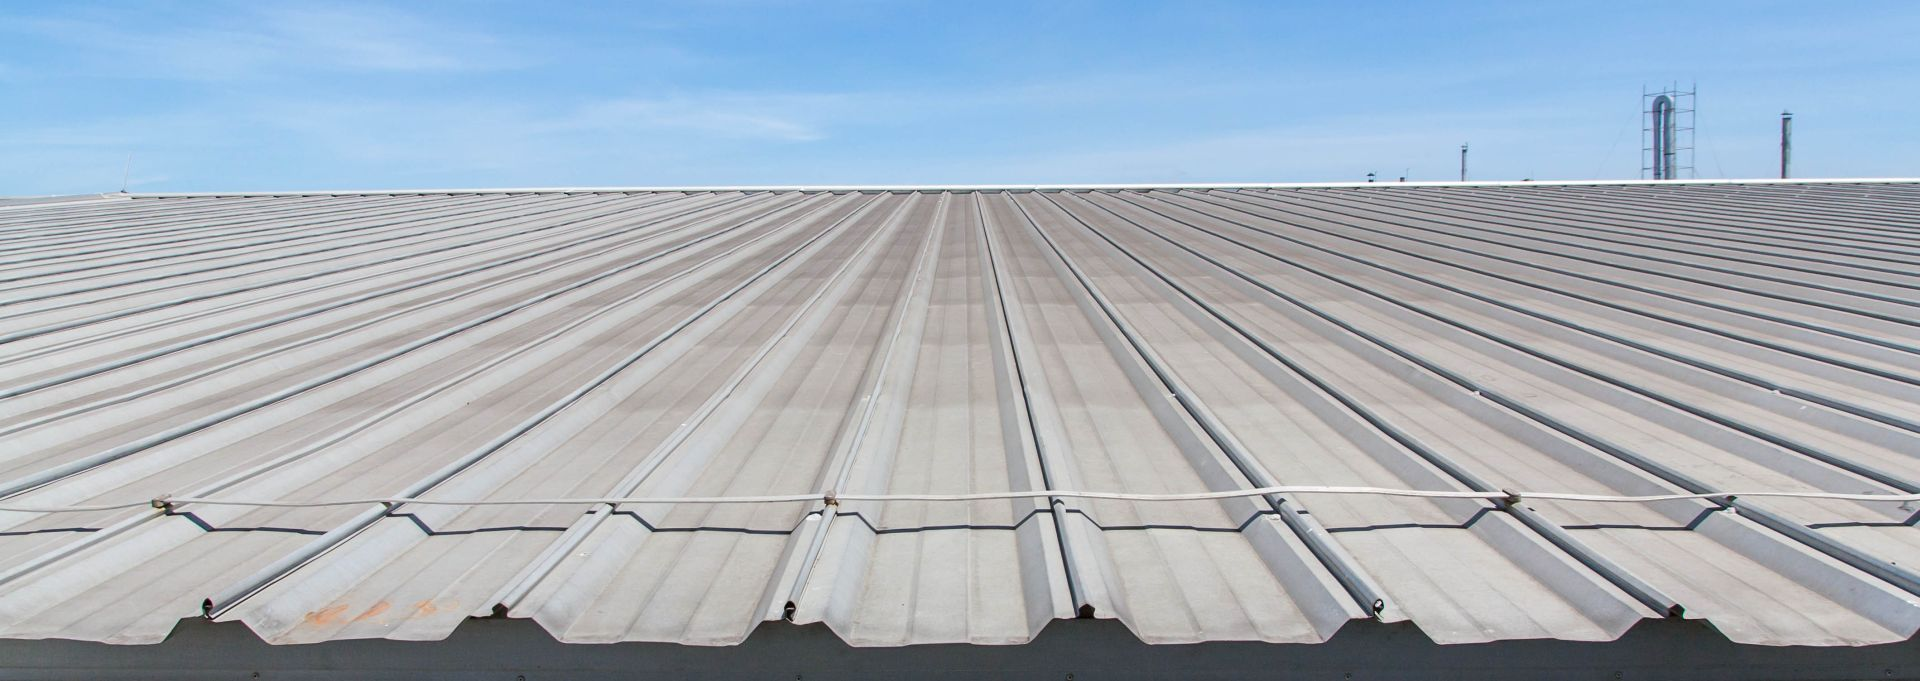 commercial roofing specialists sunshine coast